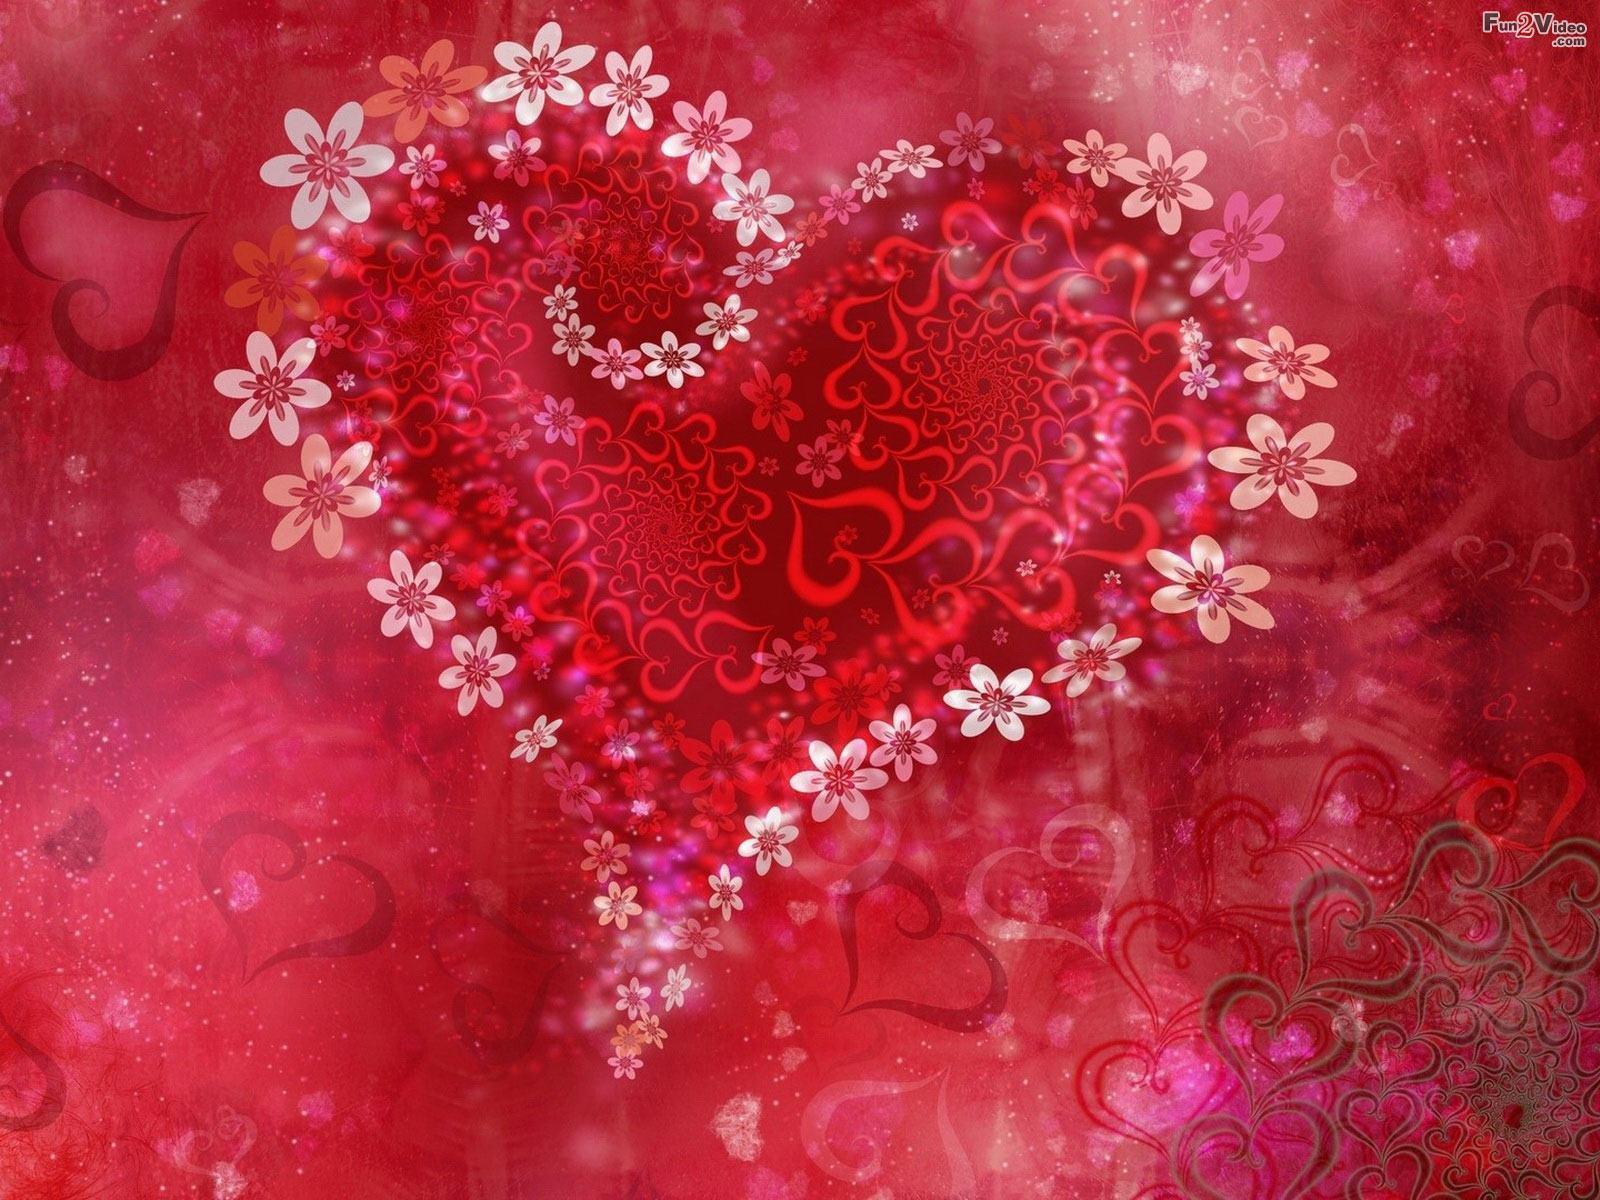 Valentine Wallpapers Backgrounds   Download Free Valentine Valent